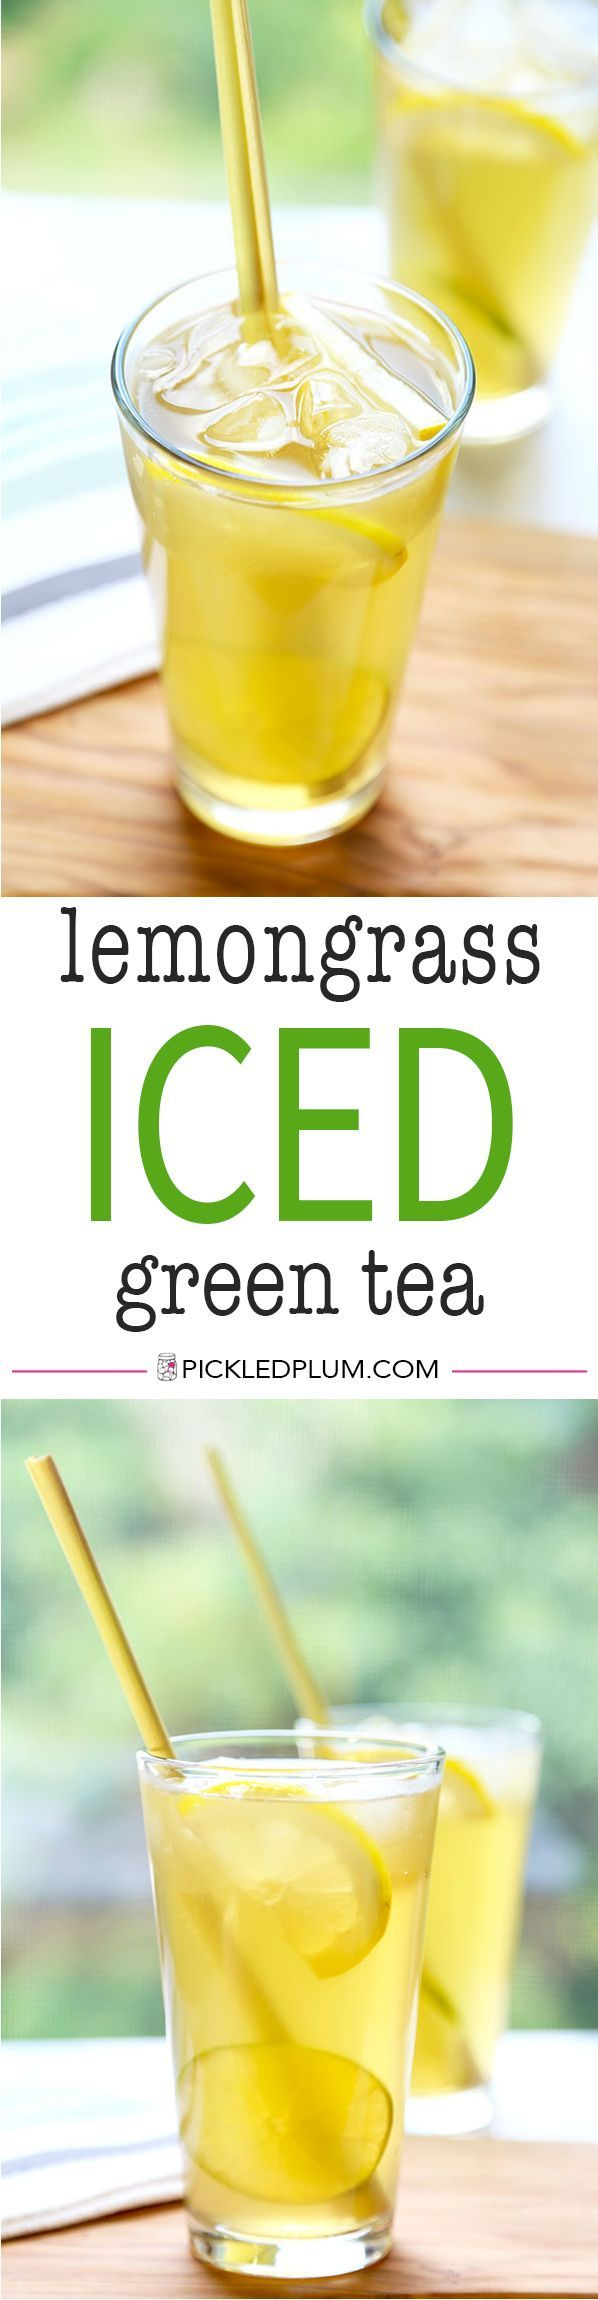 "Lemongrass Iced Green Tea - Launch your summer iced tea to next-level freshness with this super-simple Lemongrass Iced Green Tea Recipe. Crisp, citrusy, ice-cold and ready in no time! Recipe, drinks, tea, healthy, beverage | <a href="""" rel=""nofollow"" target=""_blank""></a>"